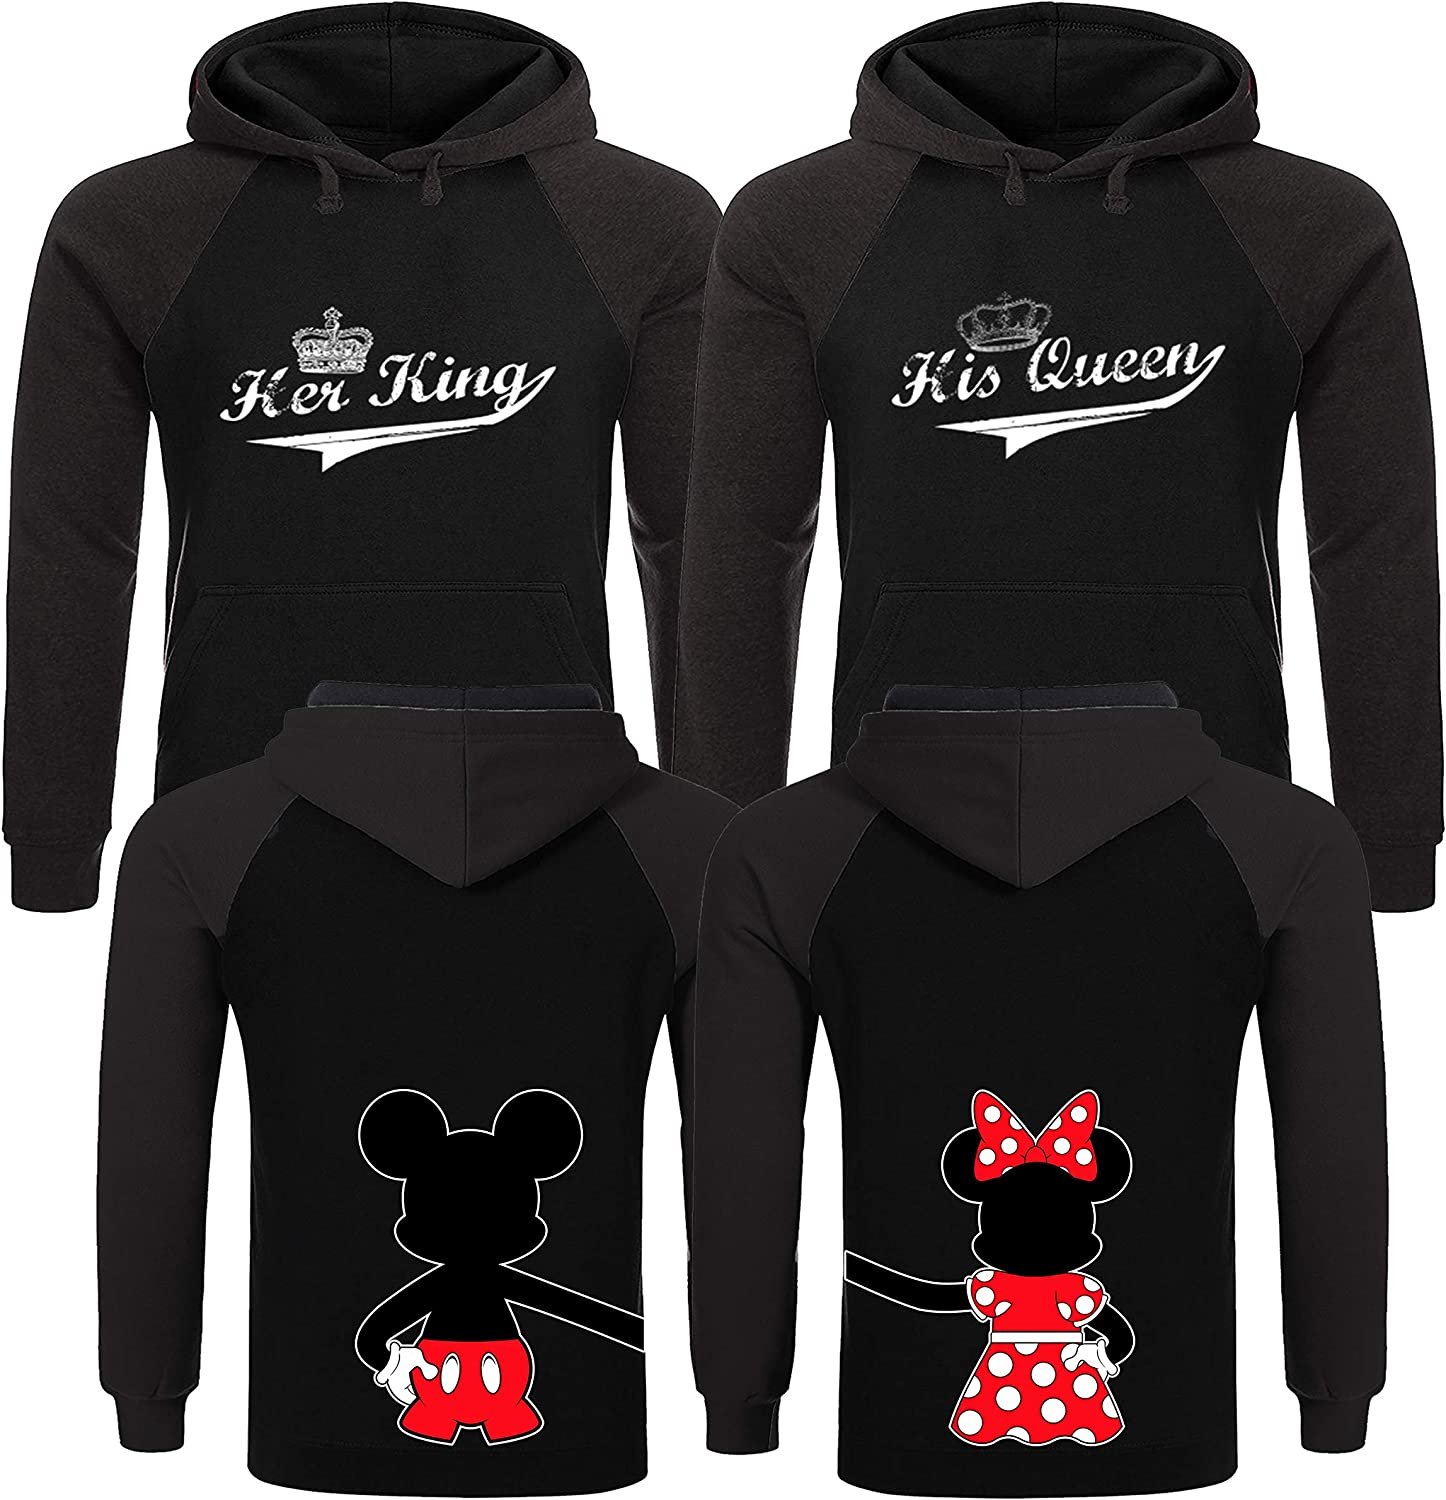 5% OFF King and Queen Hoodies His Hers Que Gifts Quality inspection Couples